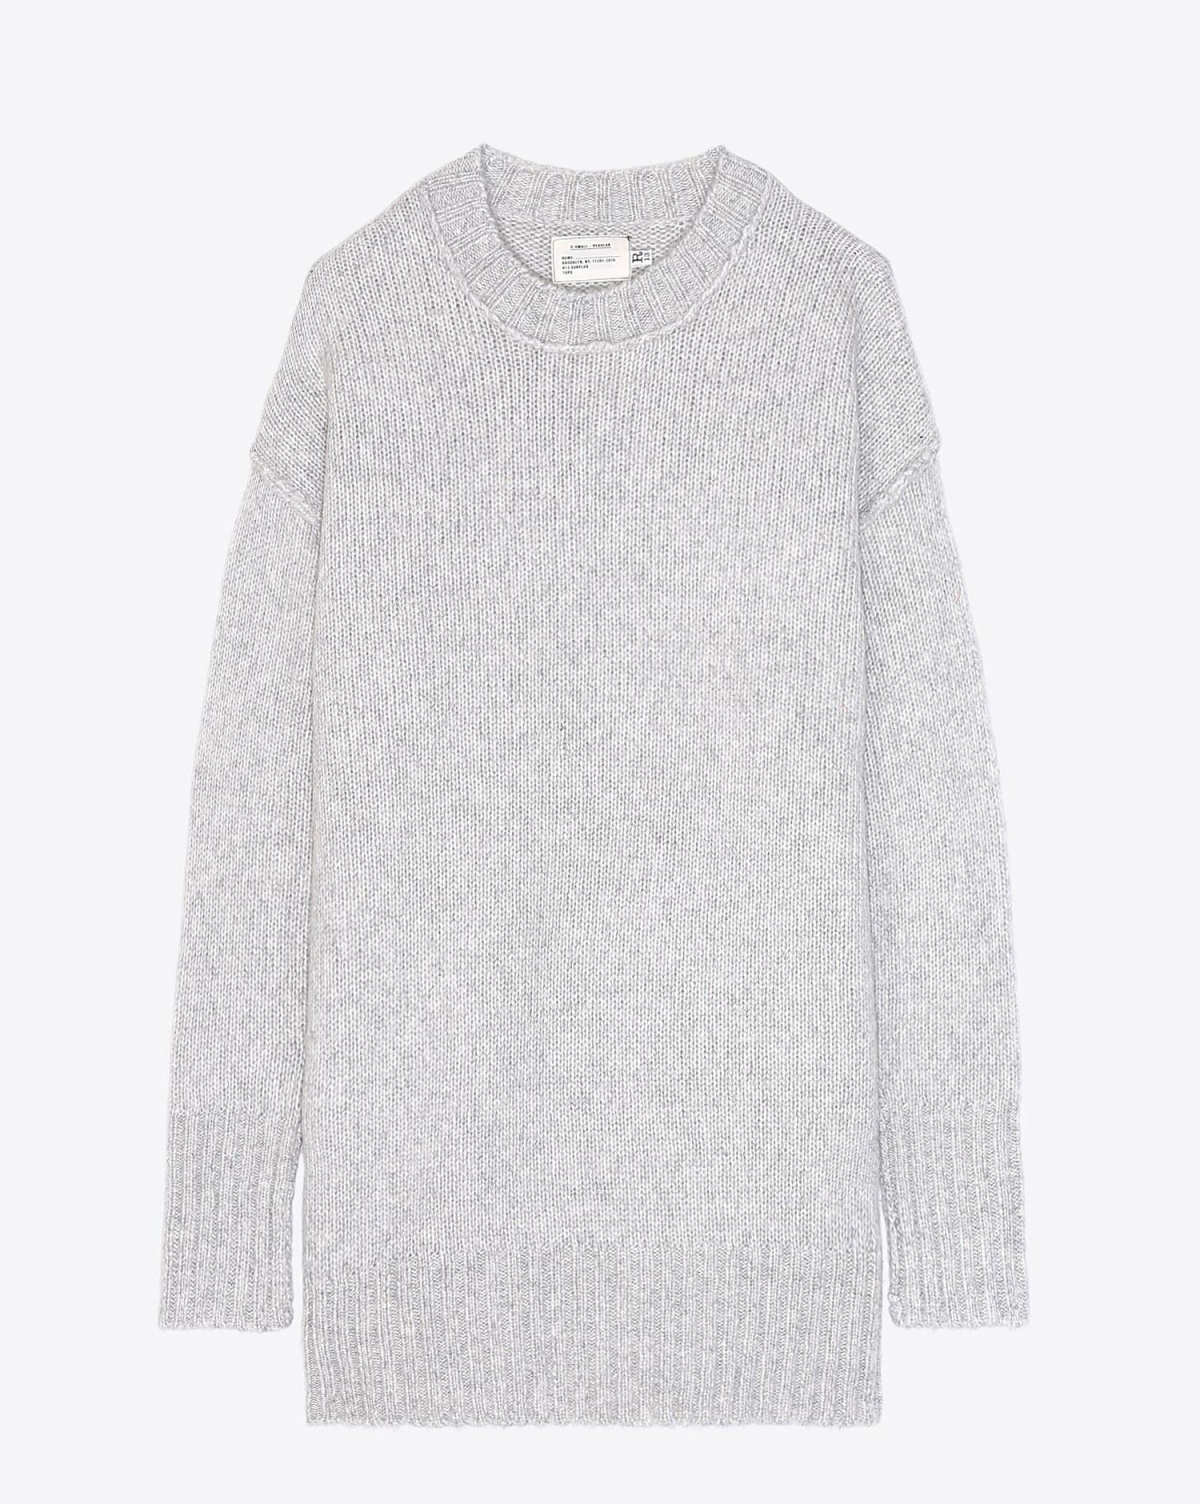 R13 Denim Collection Oversized Crewneck Sweater - Heather Grey